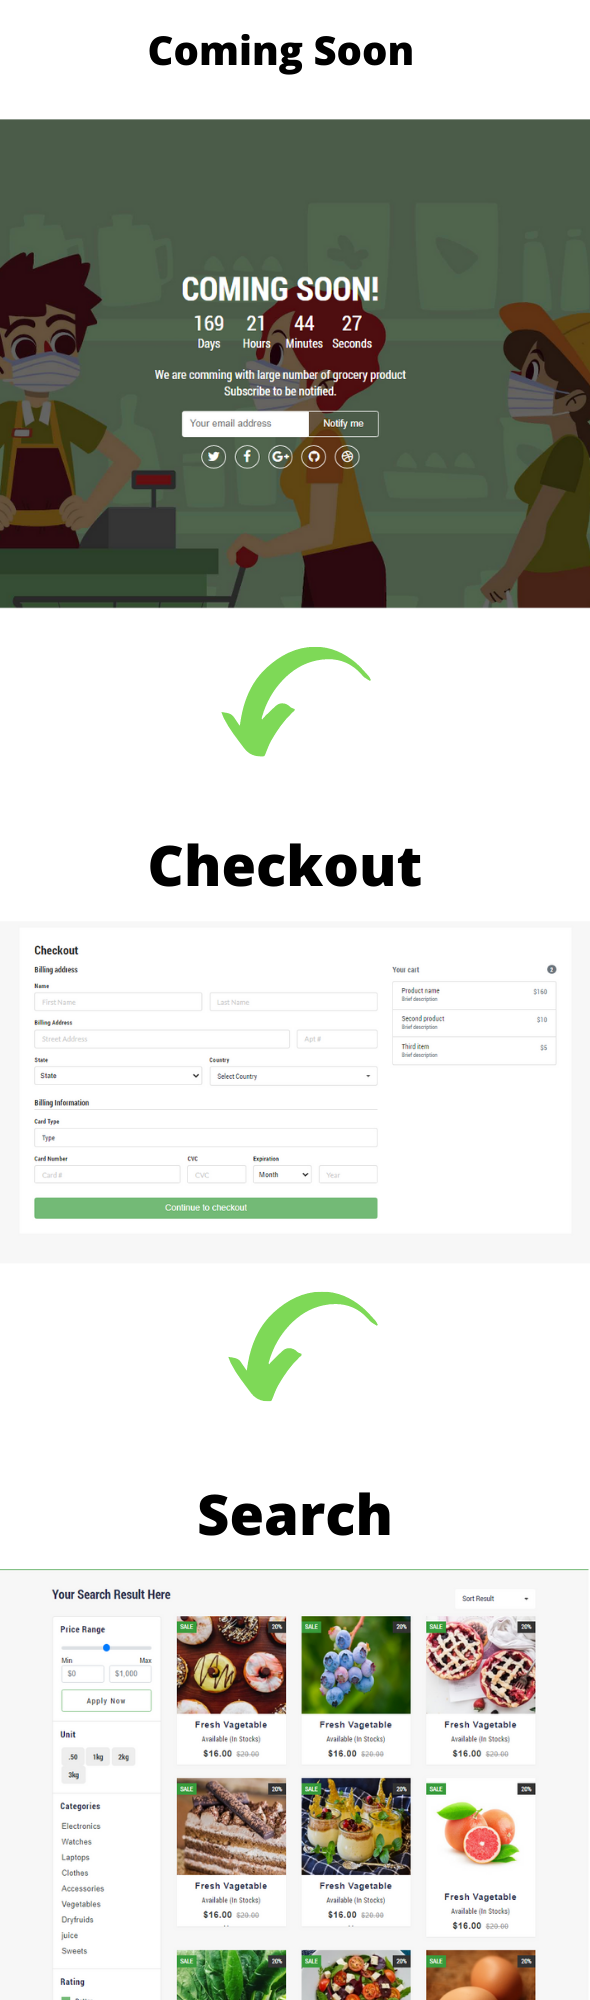 vegitable html template checkout, commingsoon, search page